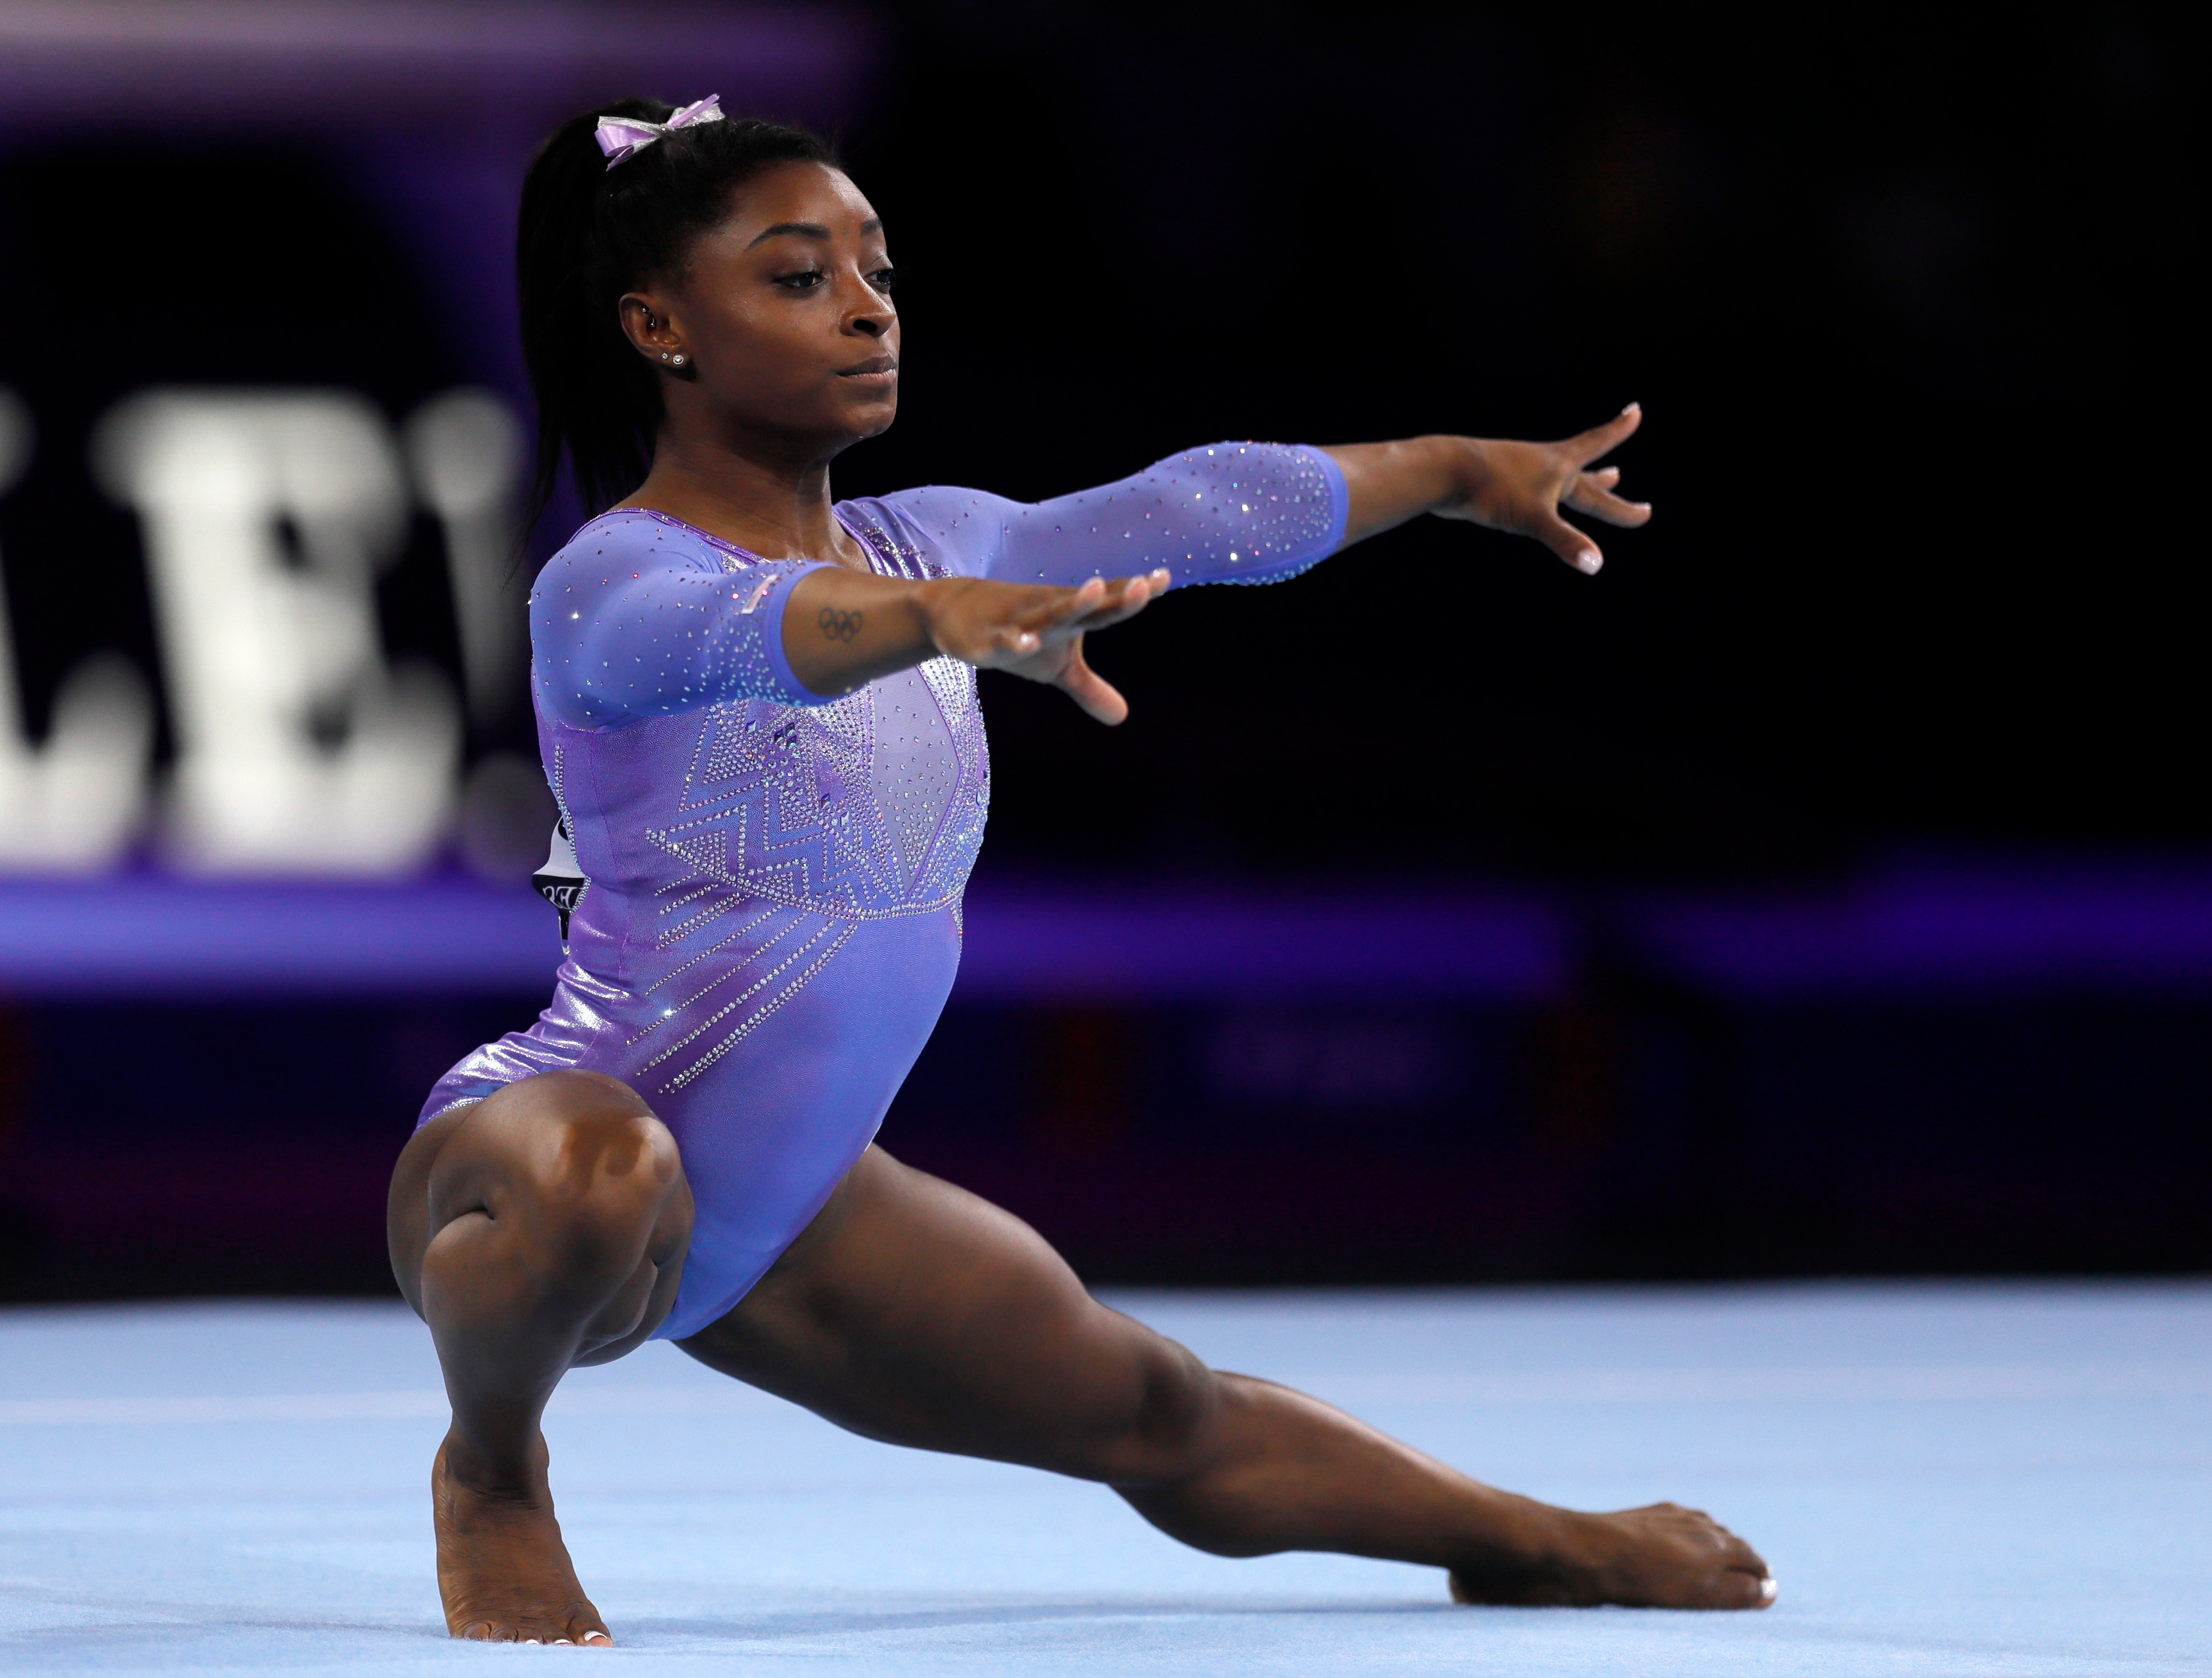 Simone Biles of the USA competes in the floor women's final at the FIG Artistic Gymnastics World Championships in Stuttgart, Germany.